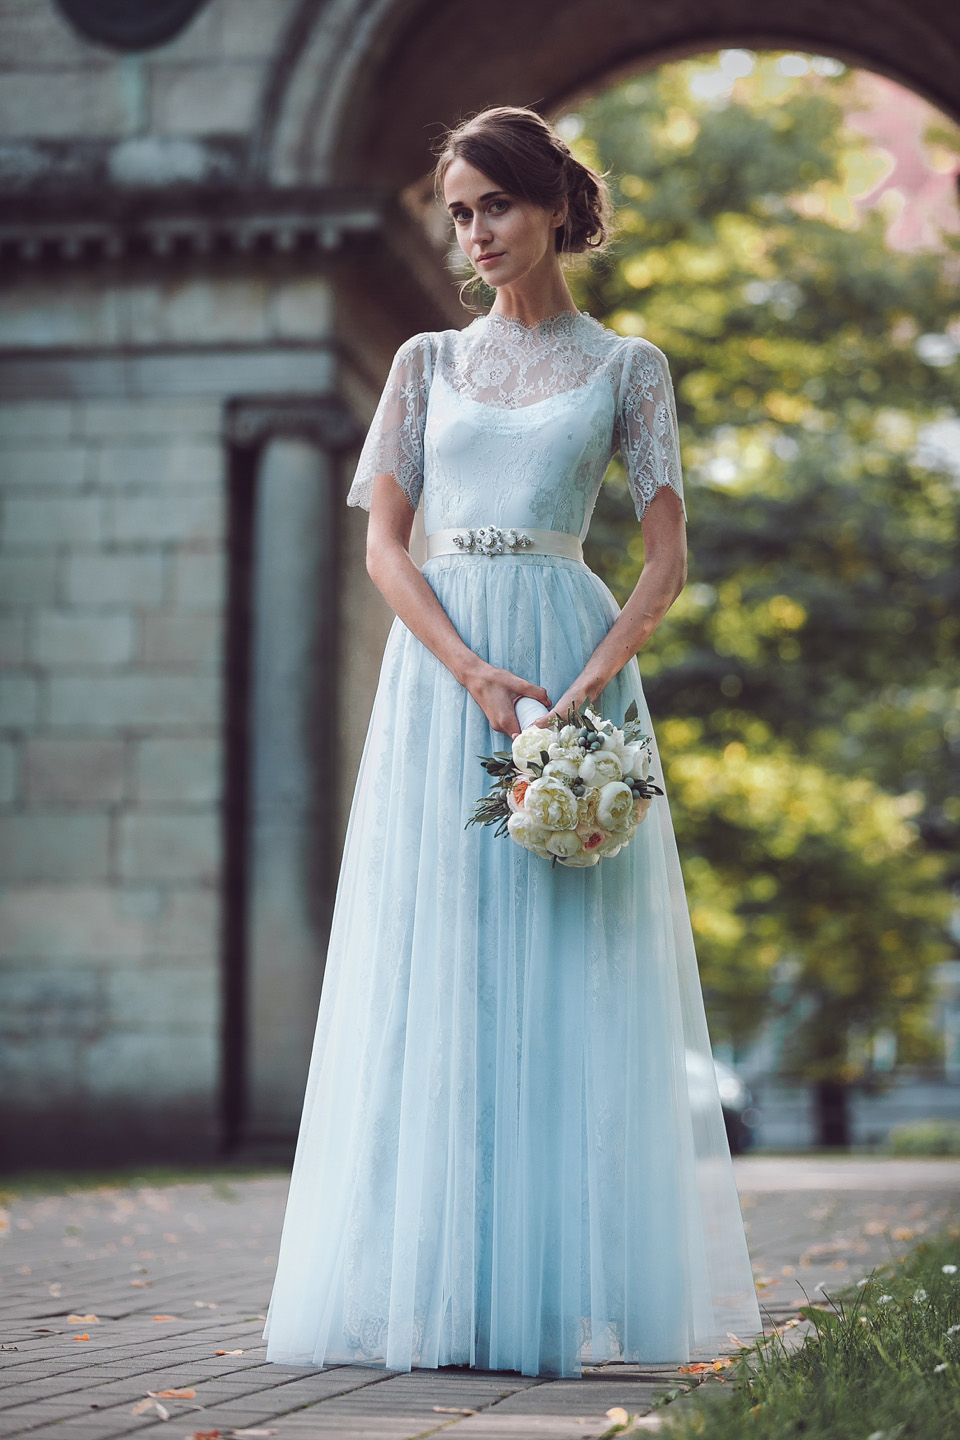 Katya katya shehurina love my dress uk wedding blog for Light blue and white wedding dresses